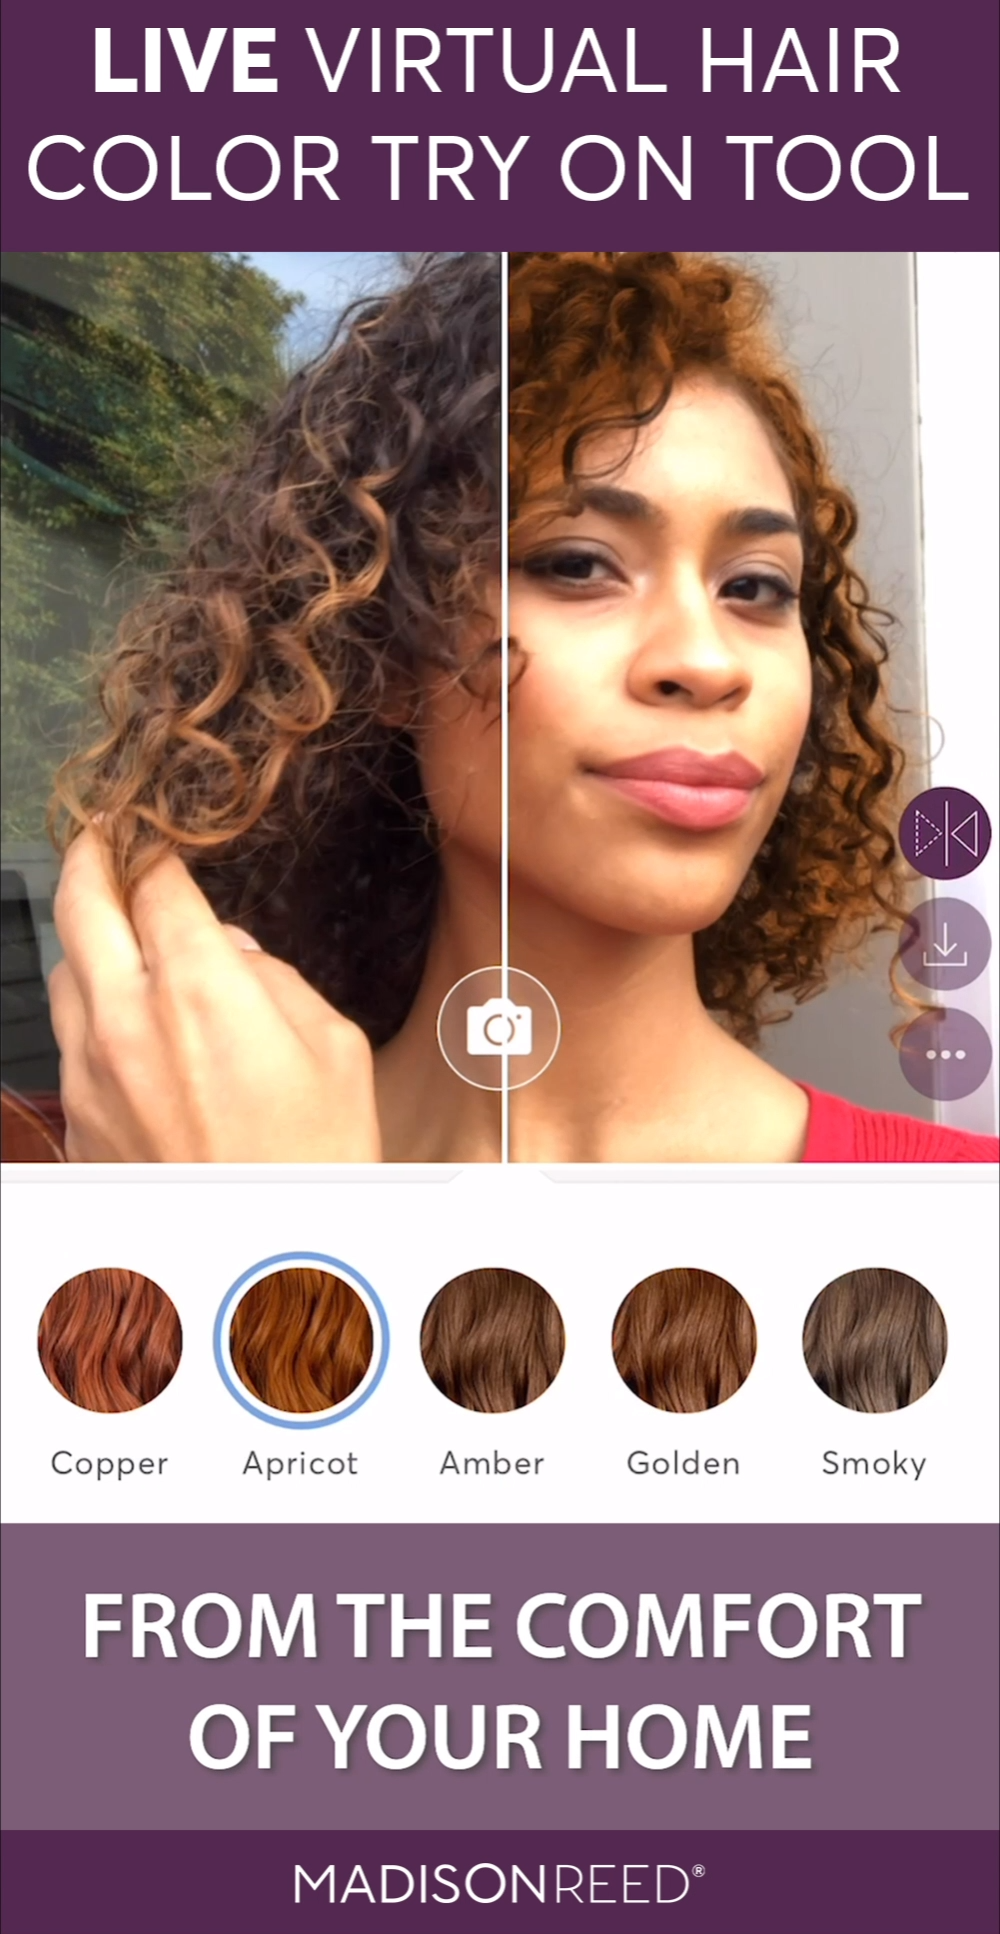 Live Virtual Hair Color Try On Tool Video Virtual Hair Color Hair Color Changer Hair Colour App